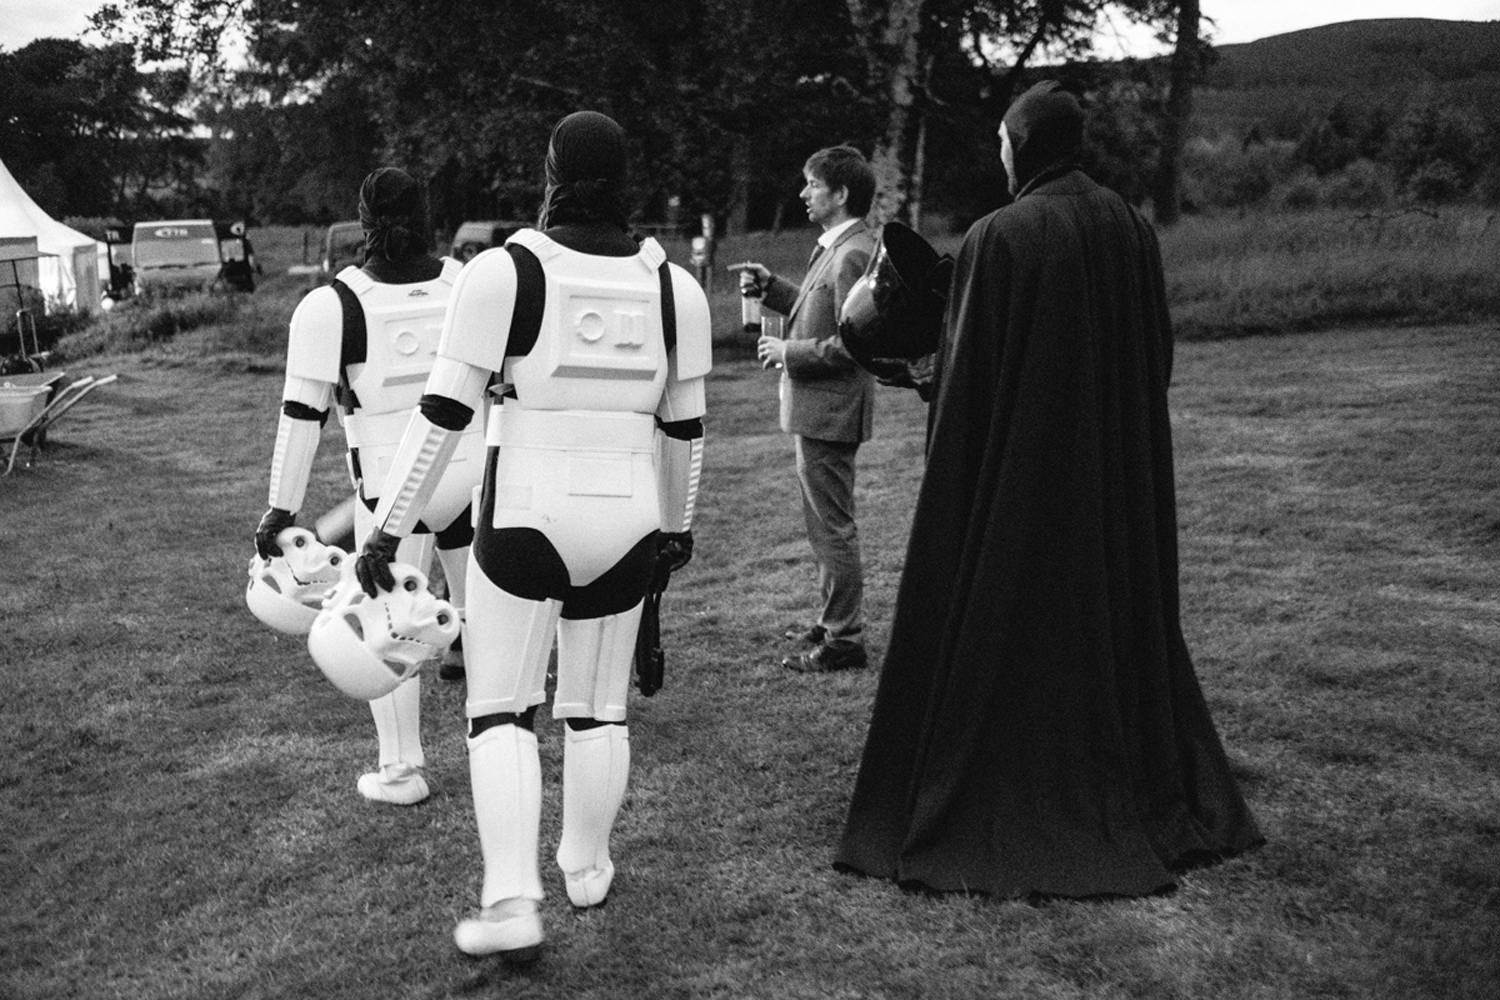 light sabers with star wars characters at a wedding